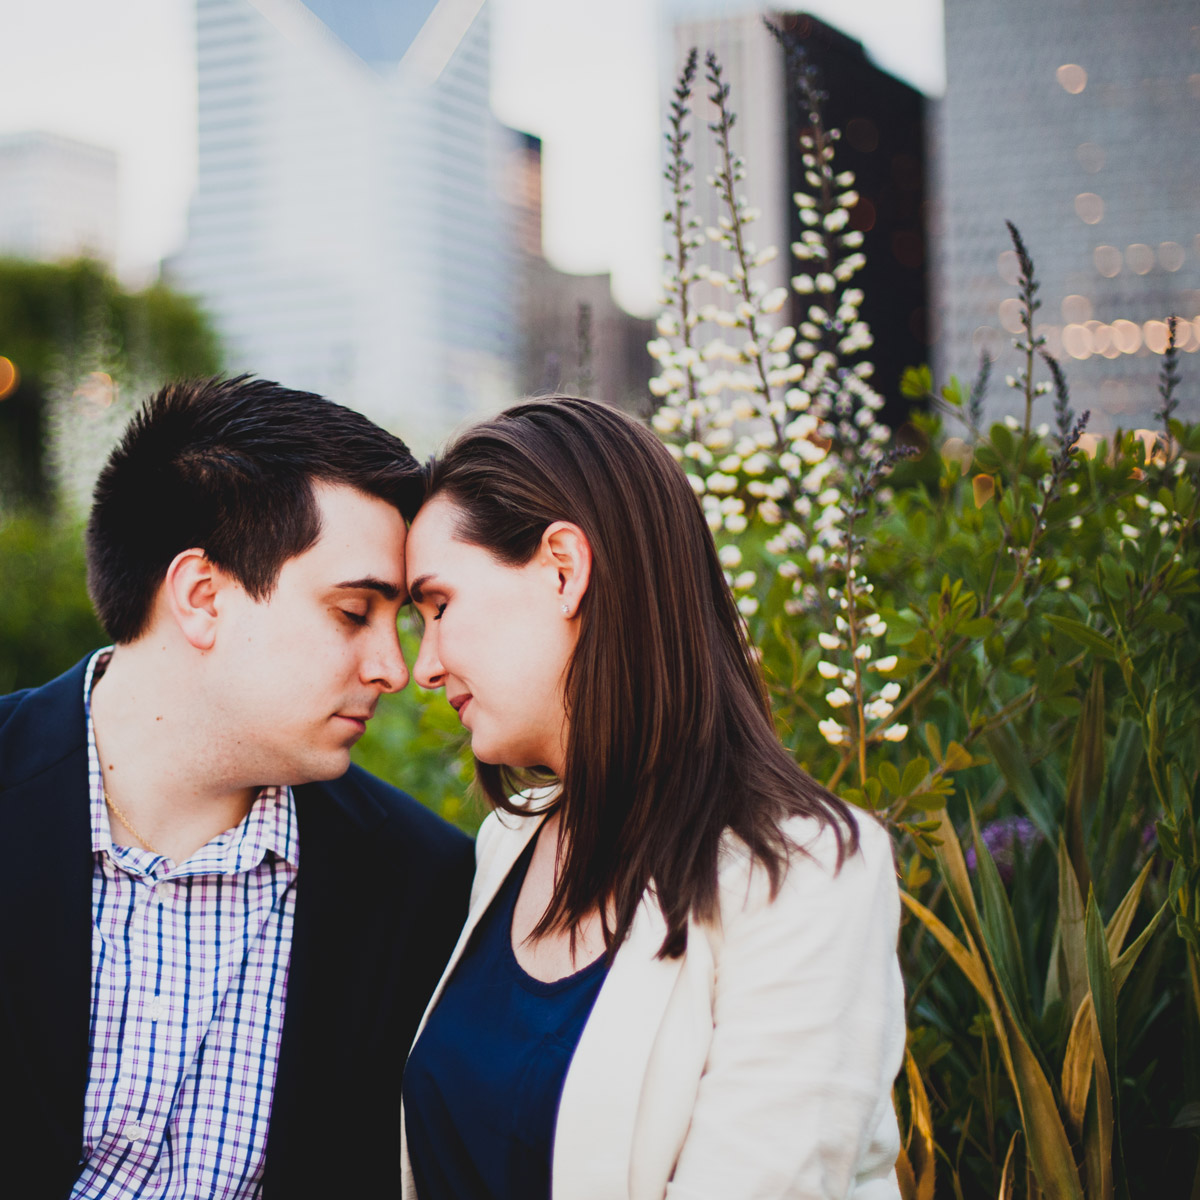 chicago engagement photography session photography matt holly night (18)